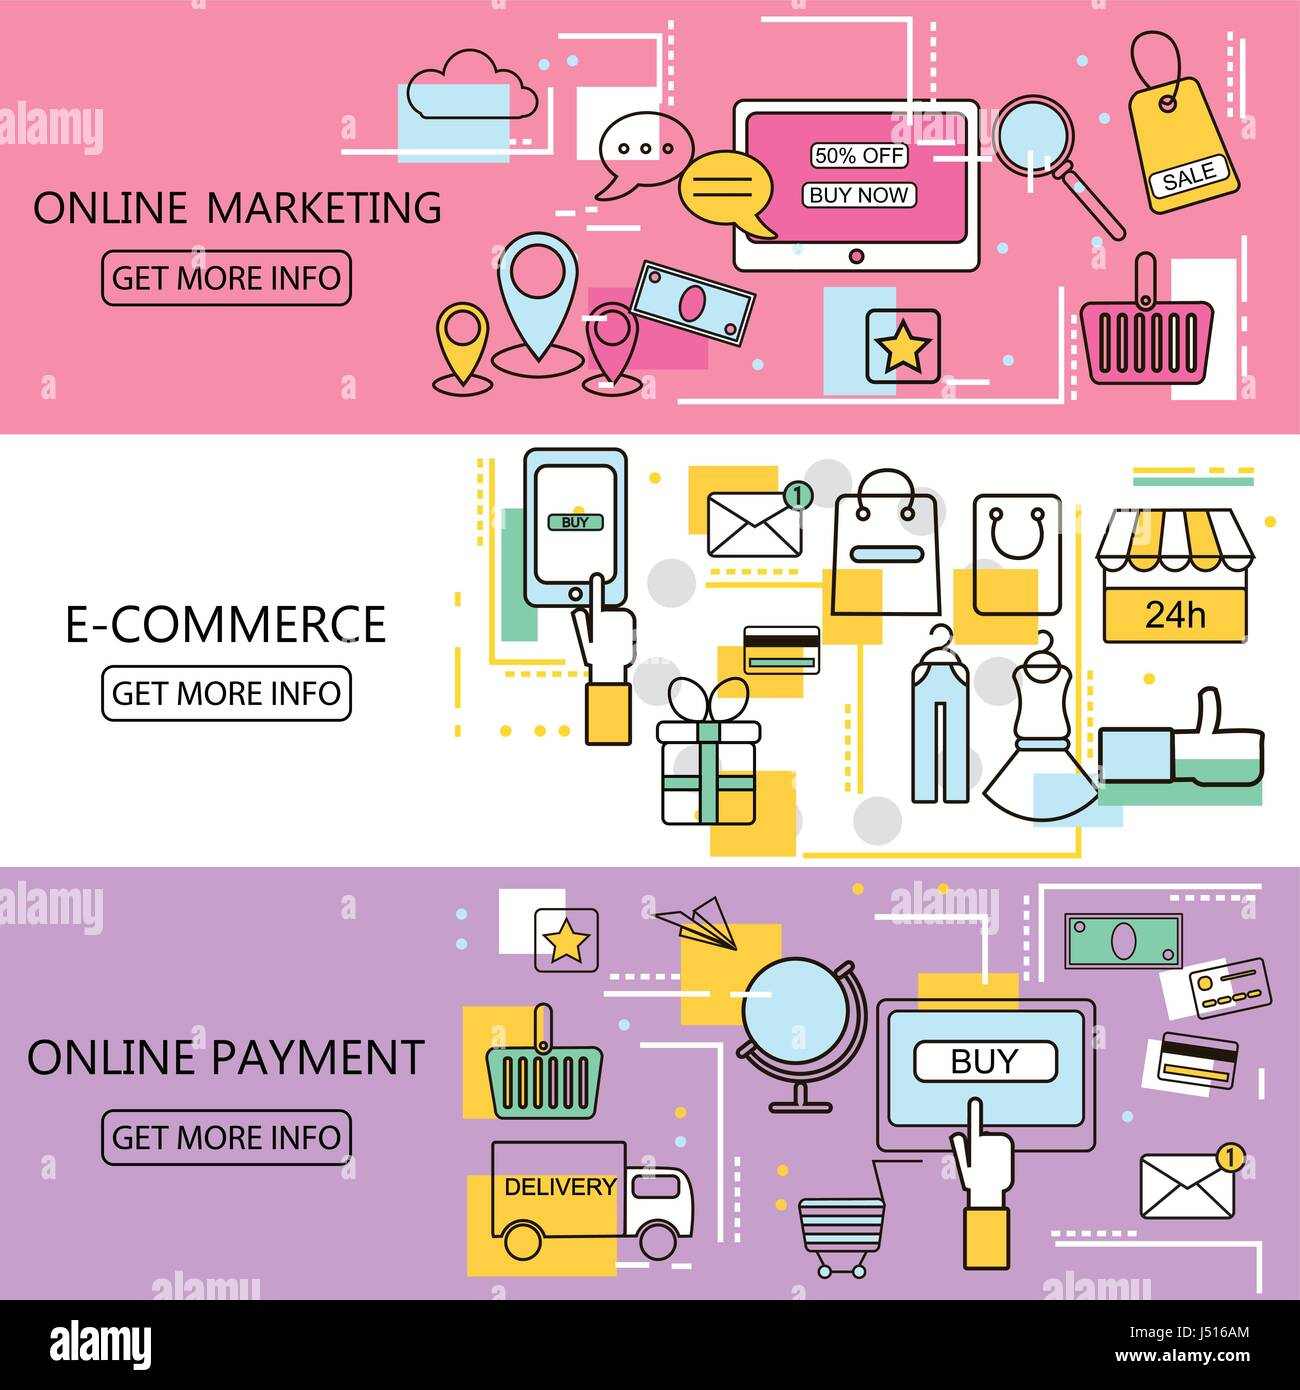 Ecommerce Marketing Banners Professional Education Banners